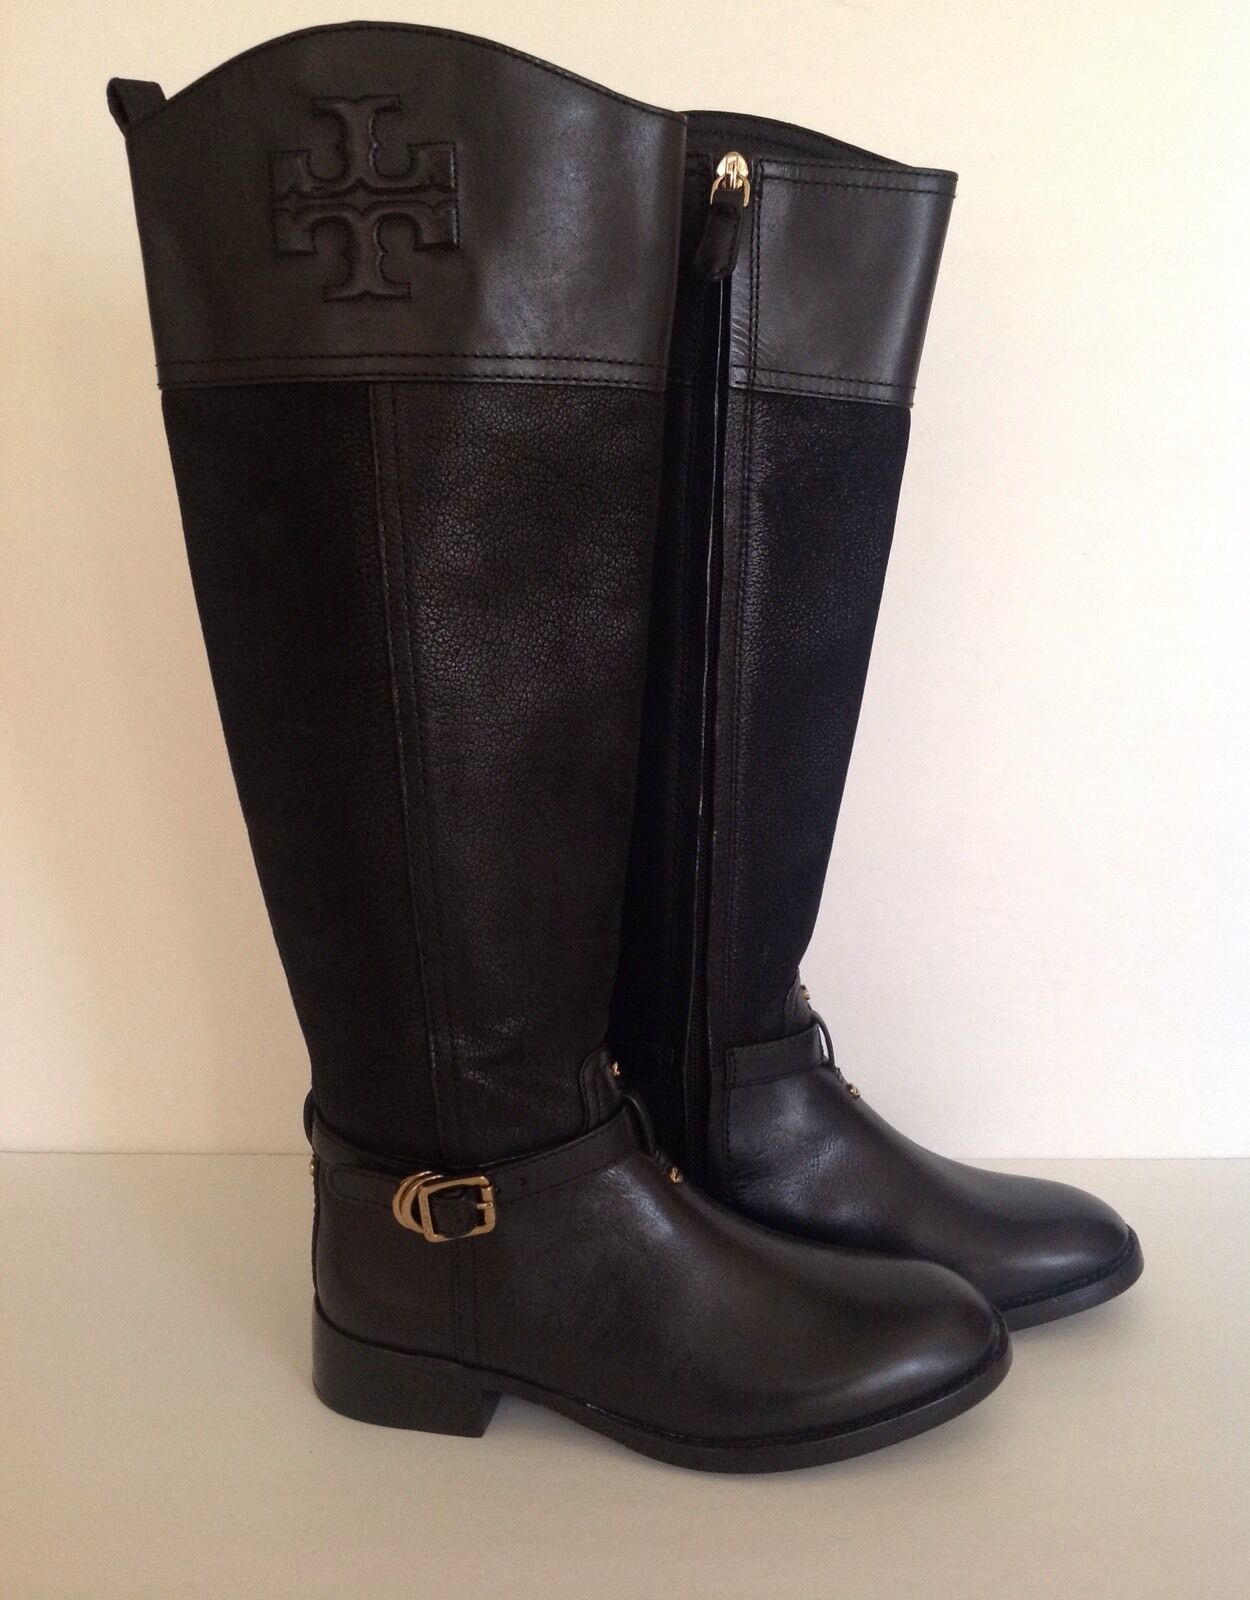 Tory Burch 'Simone' Riding Boots Women's Black Leather Size 4 M